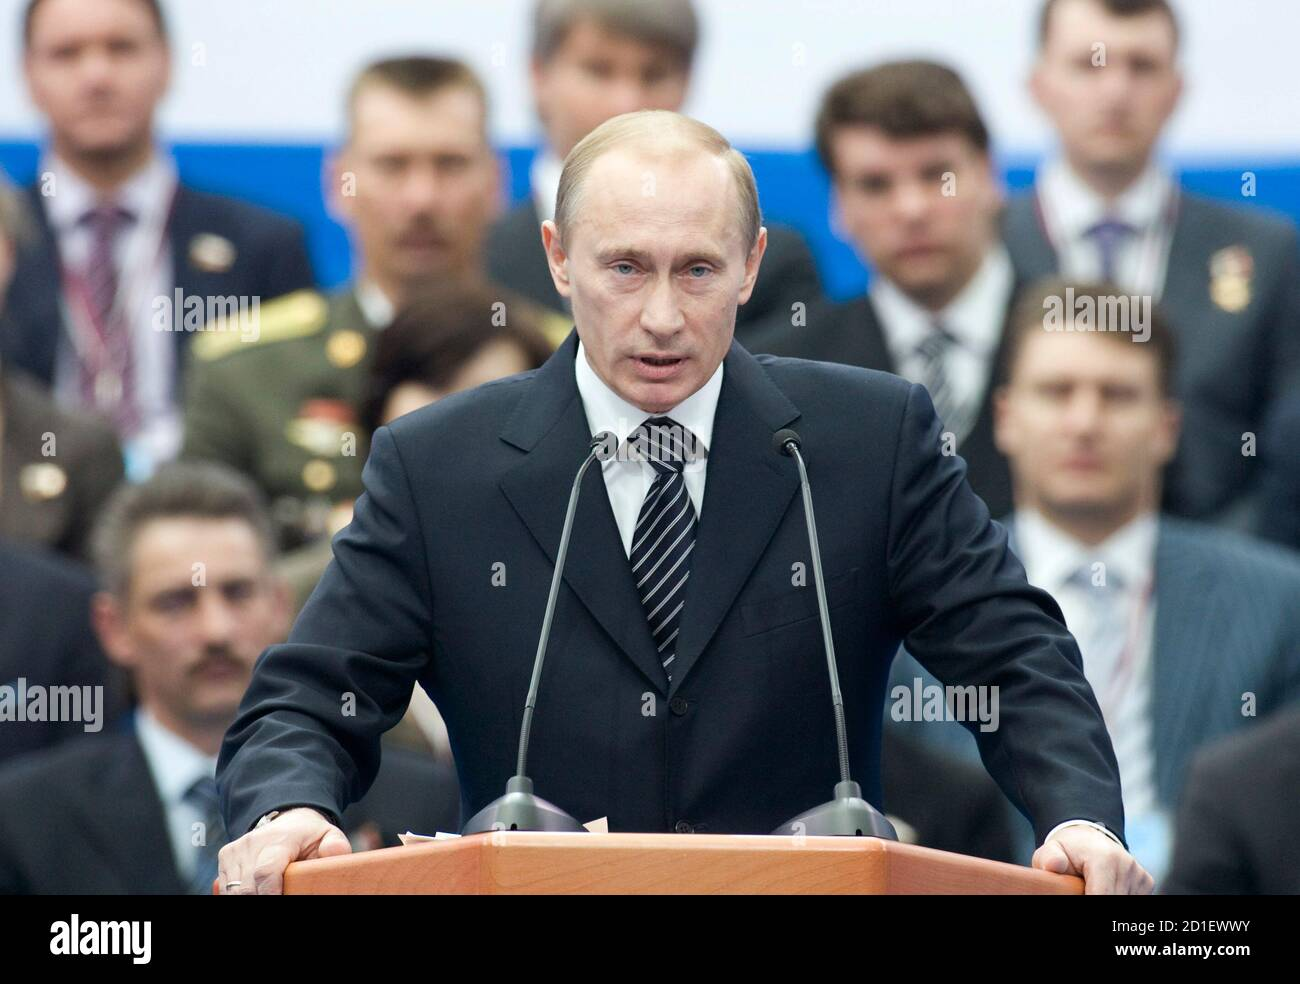 Russian President Vladimir Putin Speaks At A United Russia Party Congress In Moscow April 15 2008 Putin Agreed On Tuesday To Lead Russia S Biggest Political Party A Move That Will Entrench His